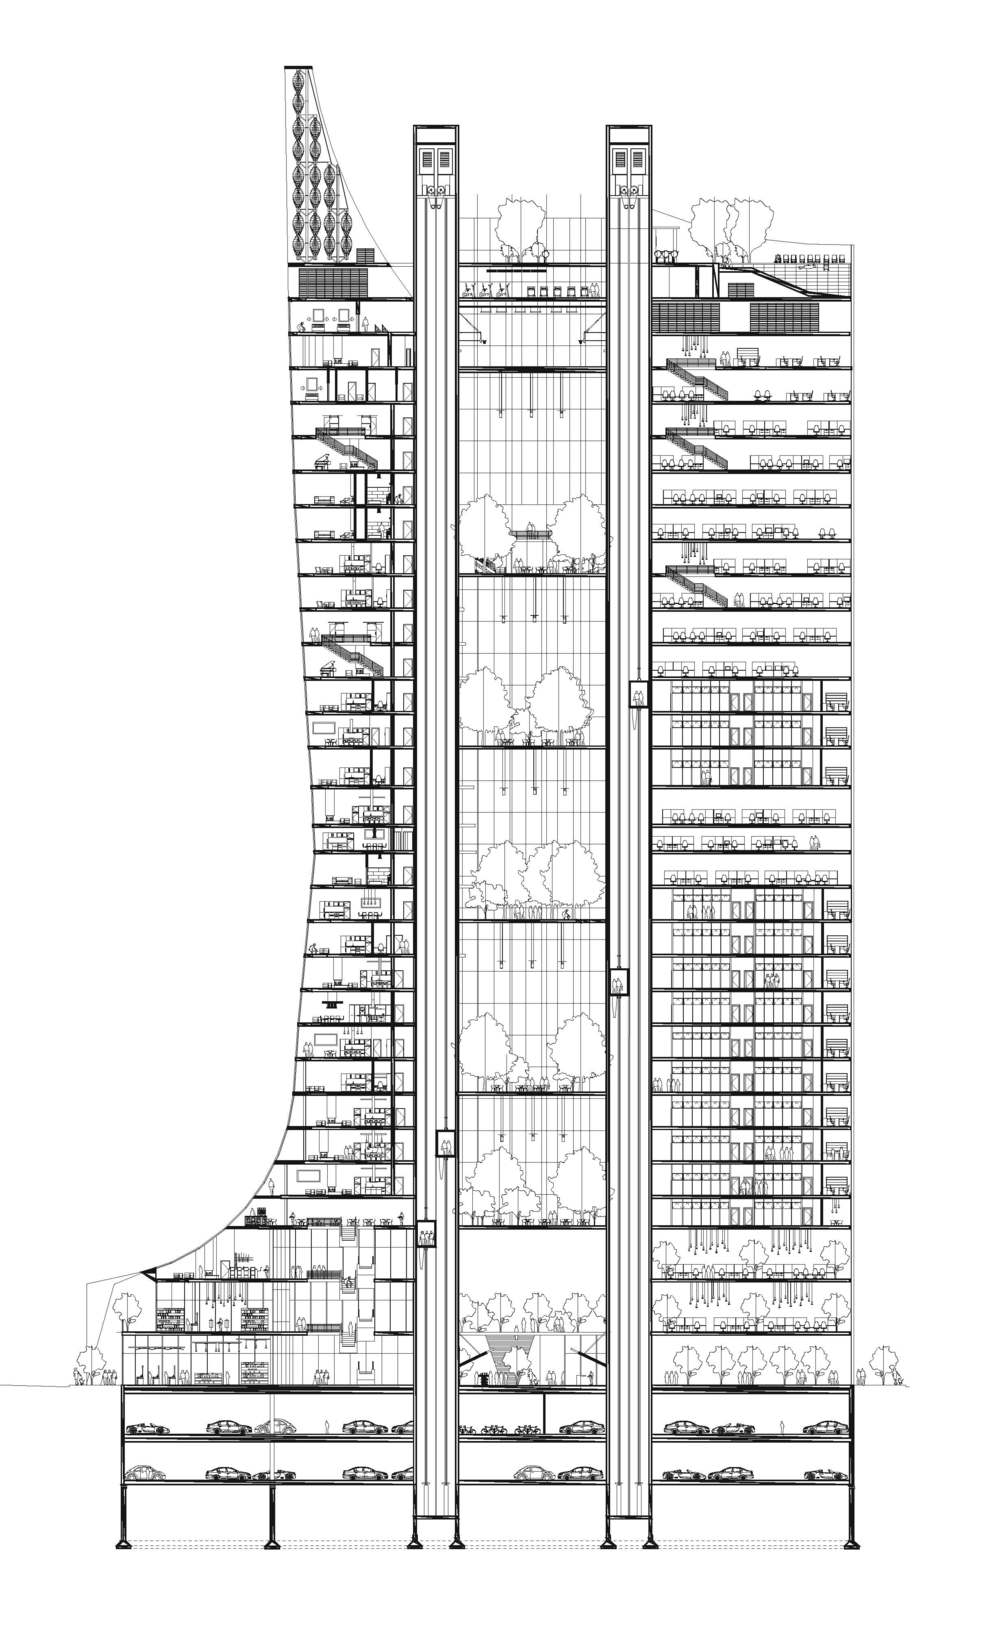 High Rise Project San Francisco Ca further Furniture Patio Table Chairs additionally Types Of Electrical Drawings as well Plan For 15 Feet By 25 Feet Plot  Plot Size 42 Square Yards  Plan Code 1684 moreover Building Security Access Plans. on architectural electrical plan drawings